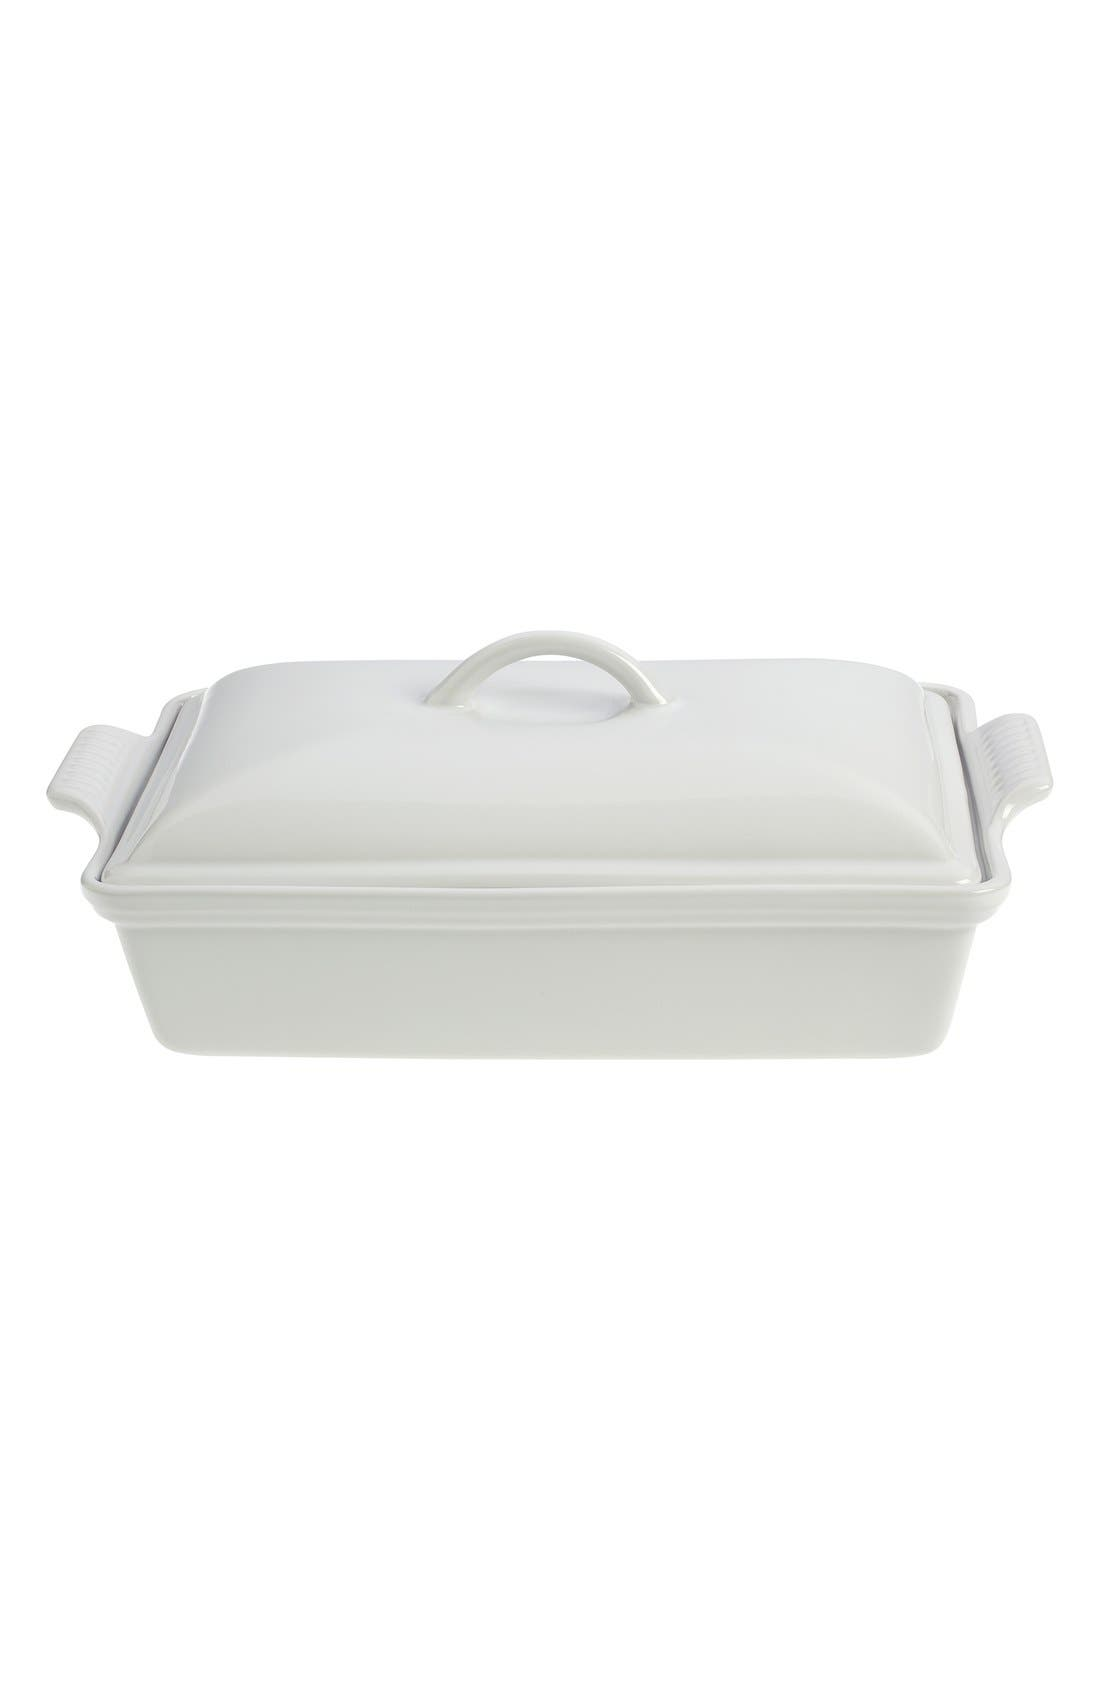 LE CREUSET 4 Quart Covered Rectangular Stoneware Casserole